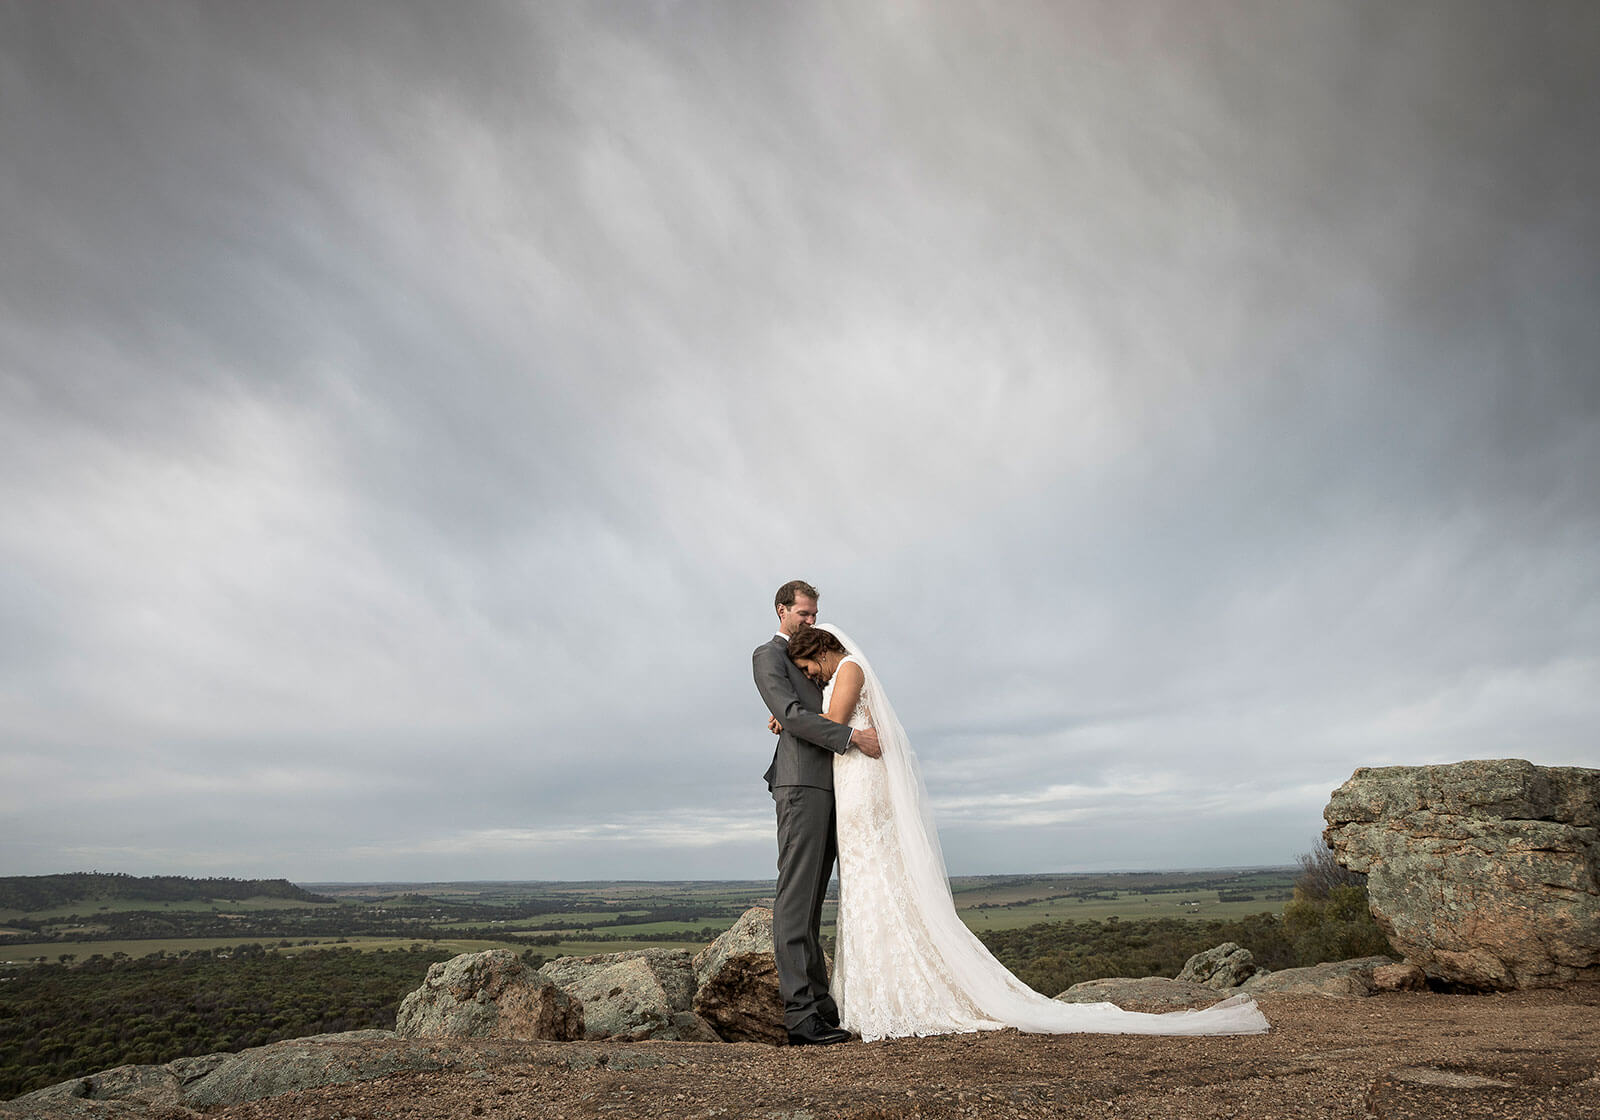 Mount Brown, York Wedding Photography by Peter Adams-Shawn